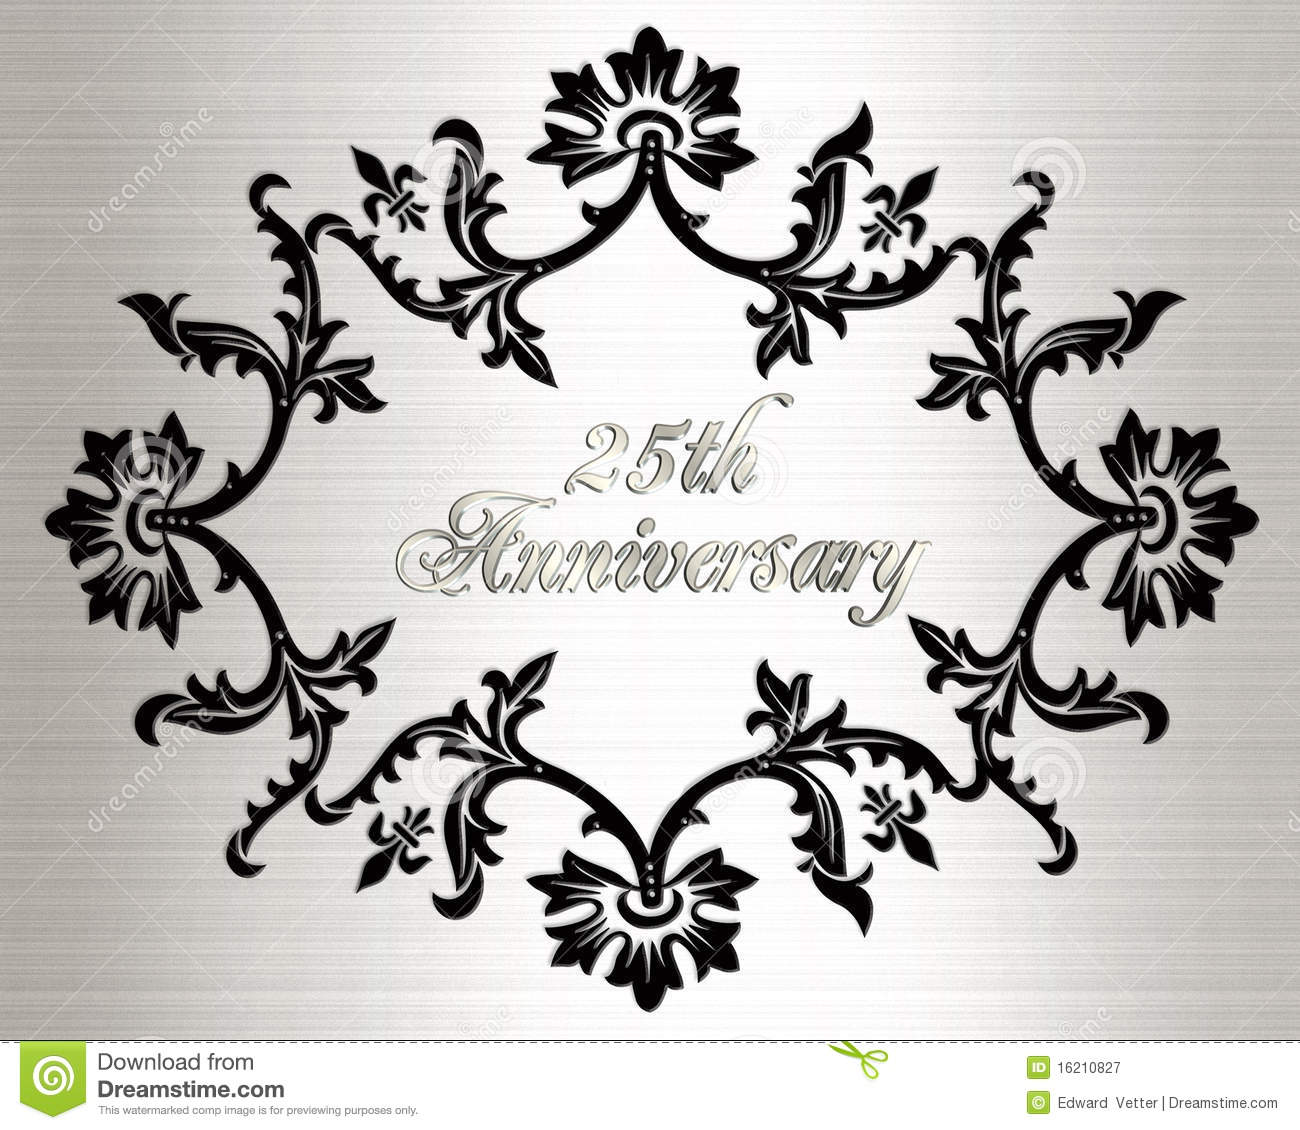 25th Anniversary Invitation Card Stock Illustration - Illustration ...